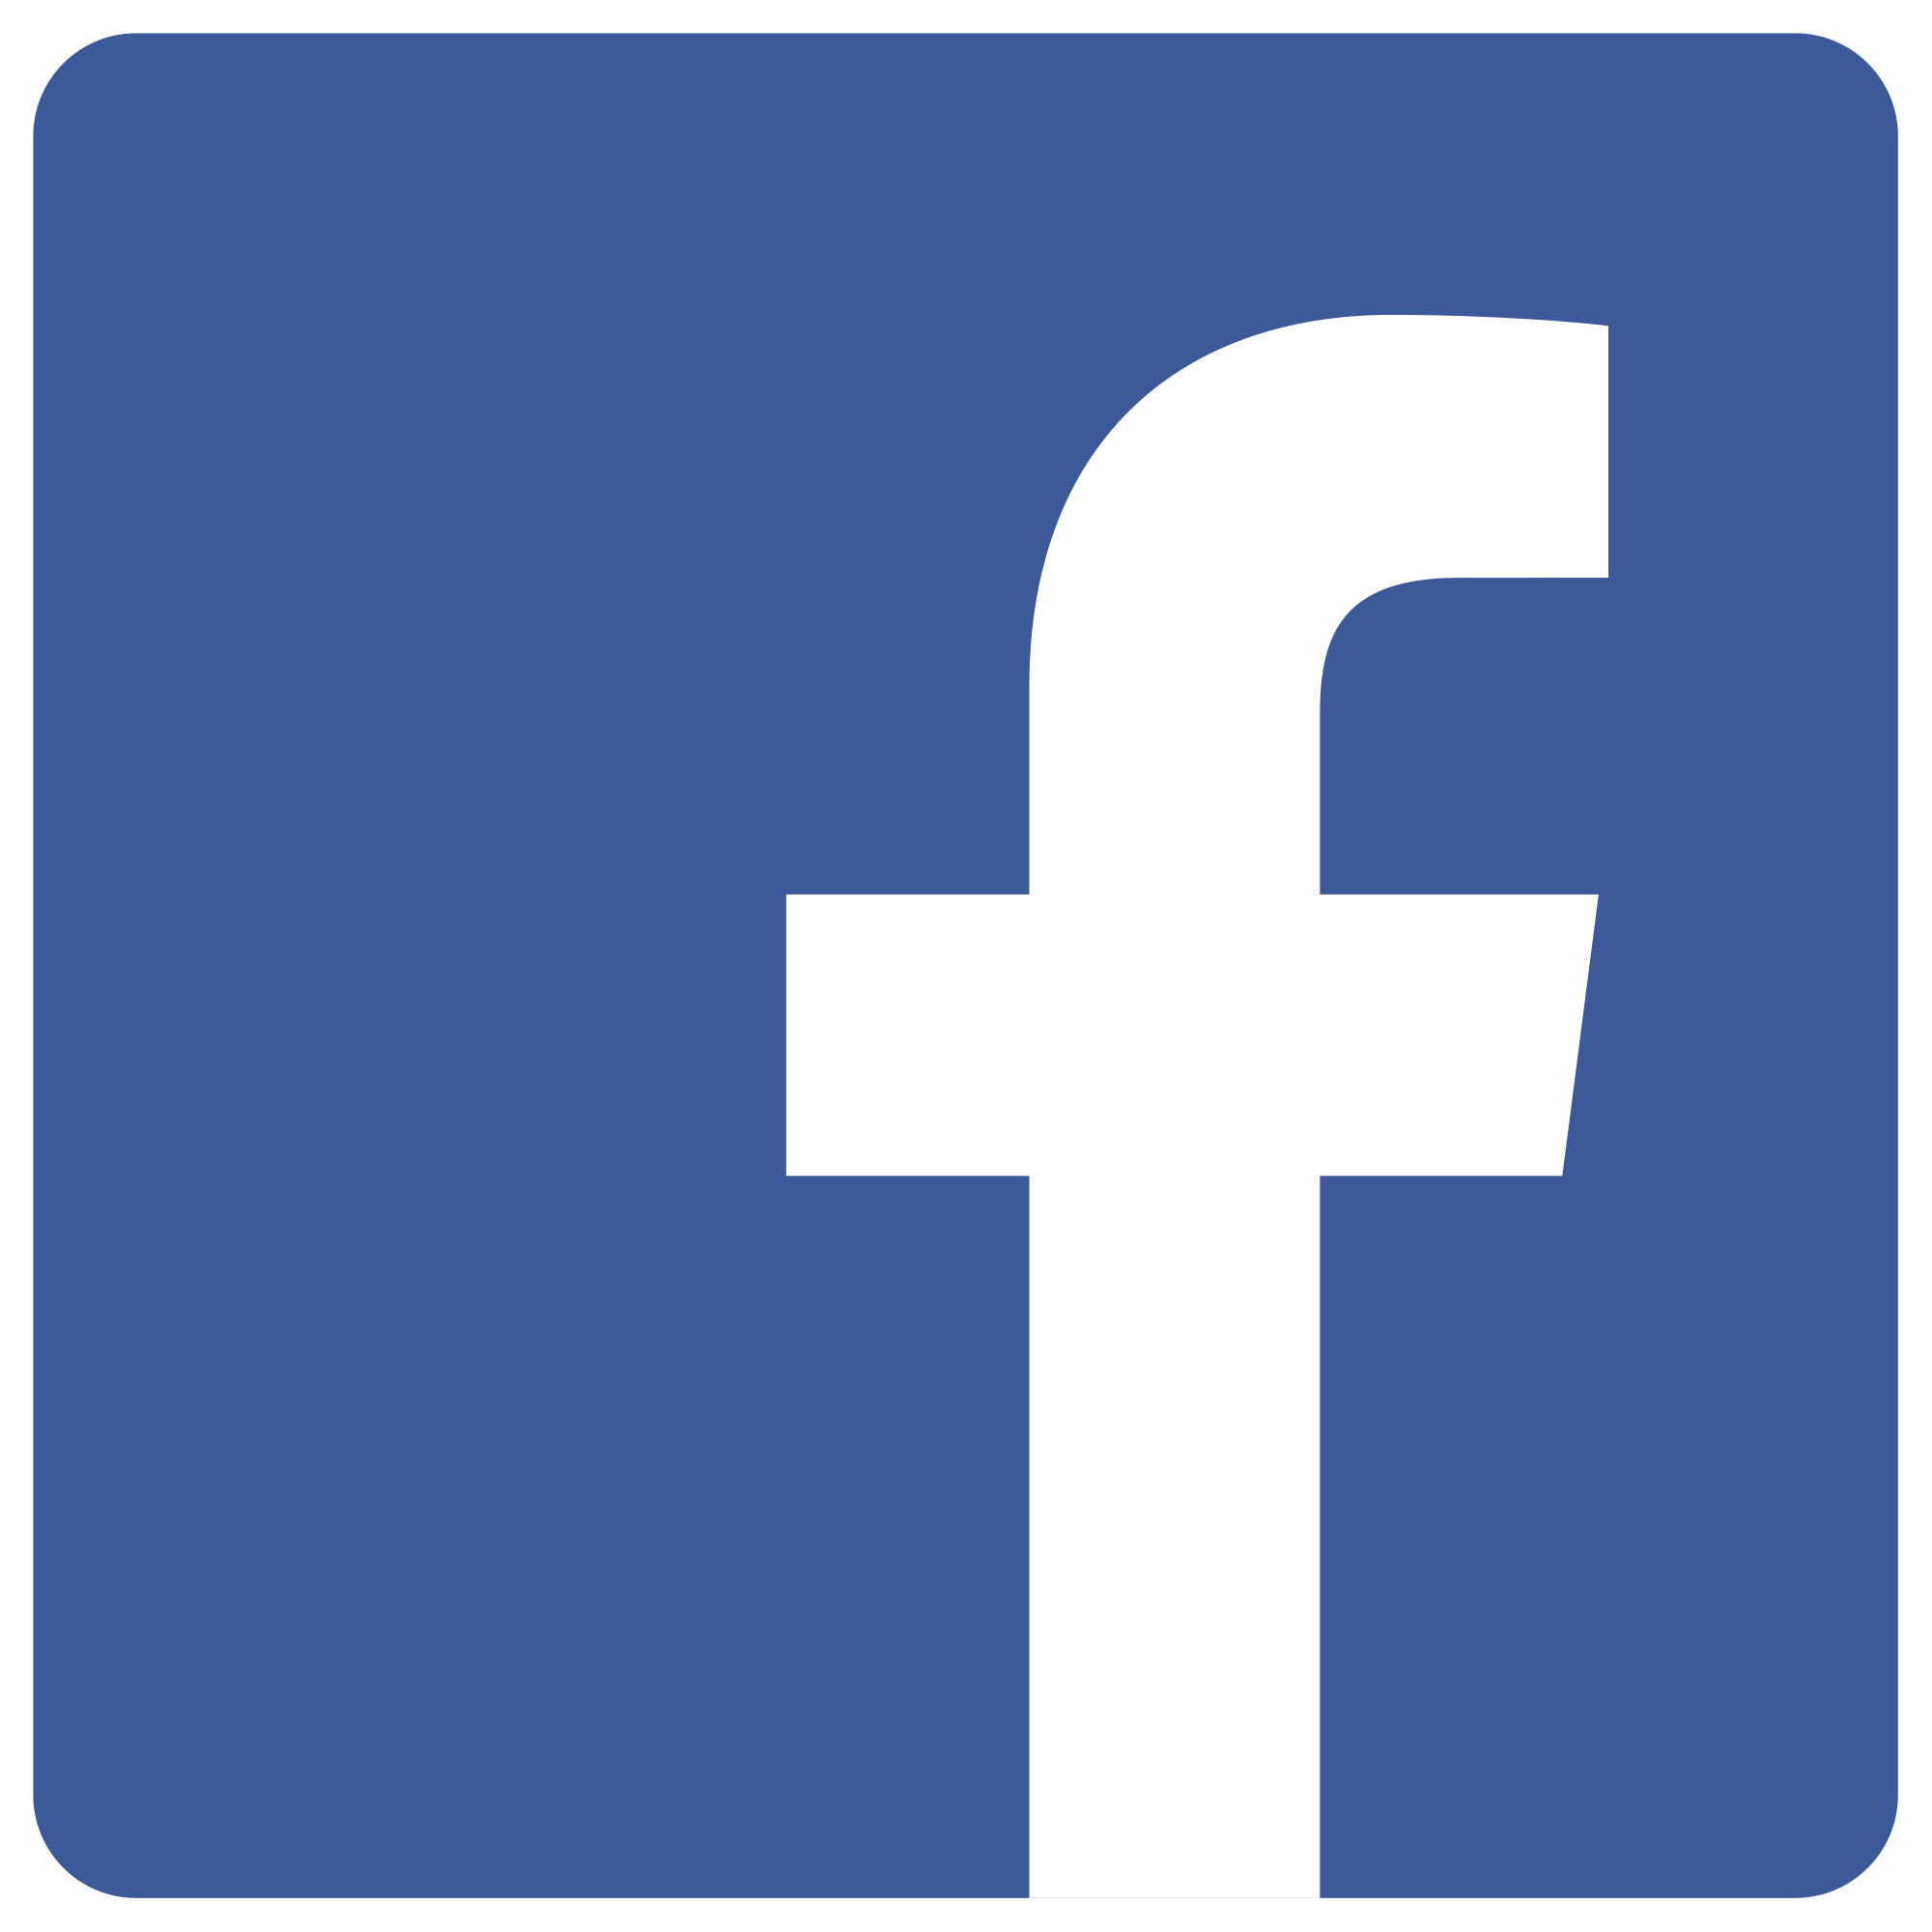 Like us on Facebook! - Check out our the Bicimakina Facebook page for updates, event listings and more.